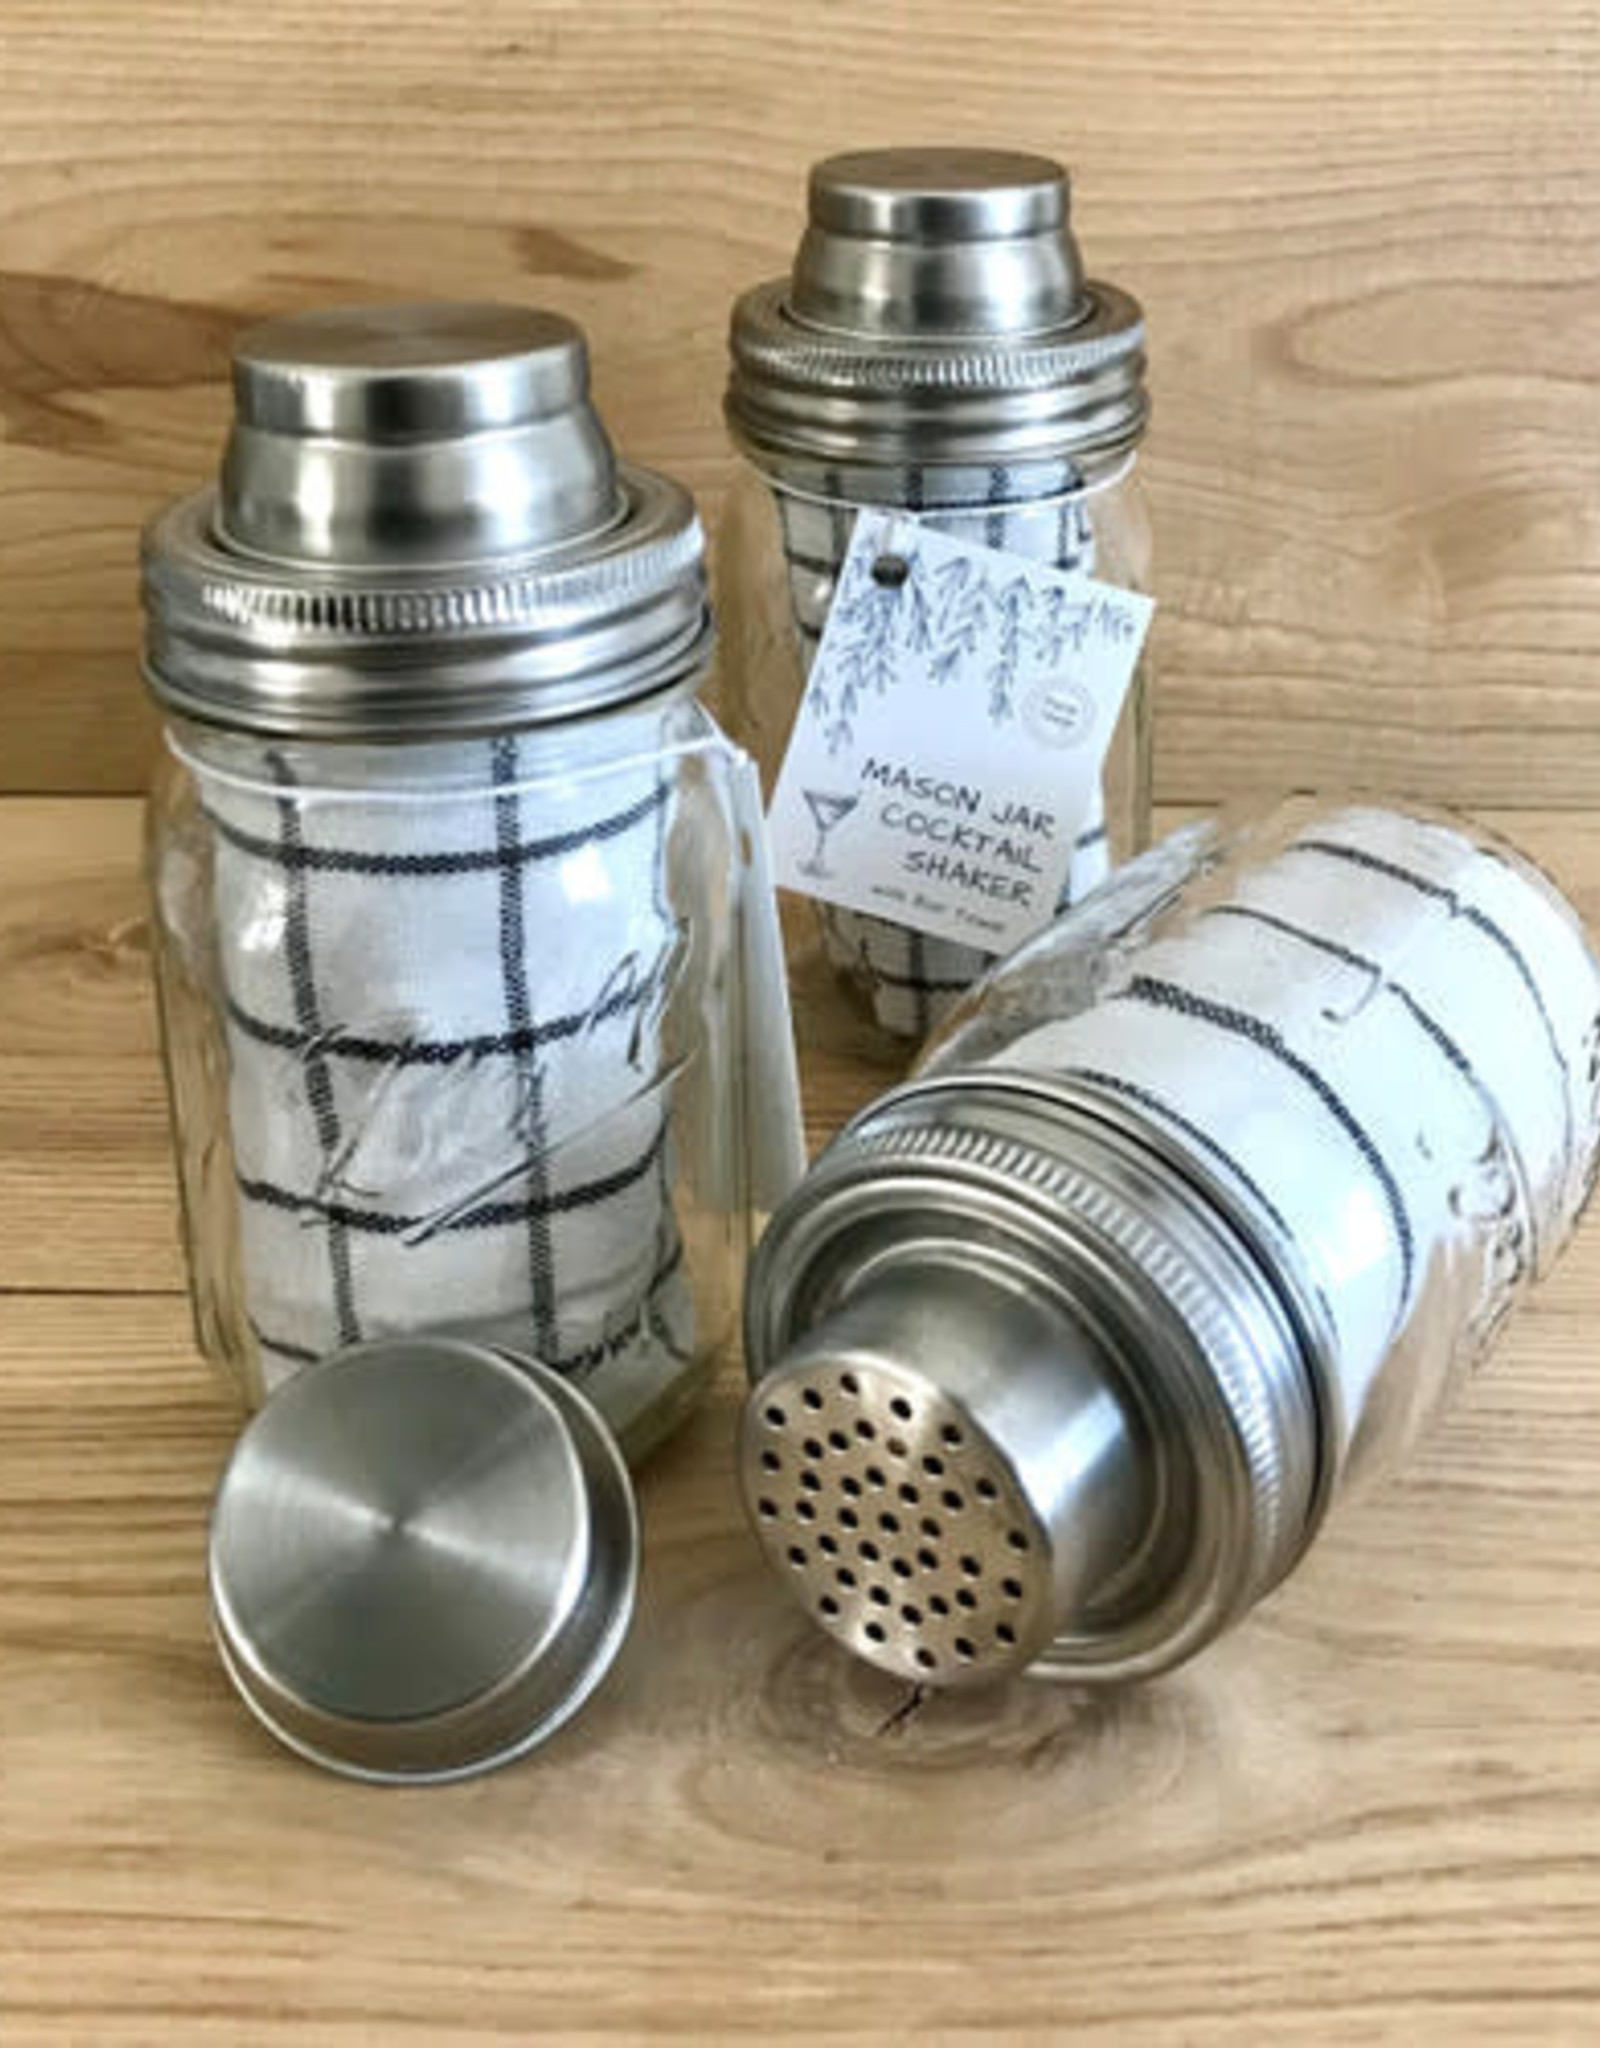 Mason Jar Cocktail Shaker Set w/Bar Towel